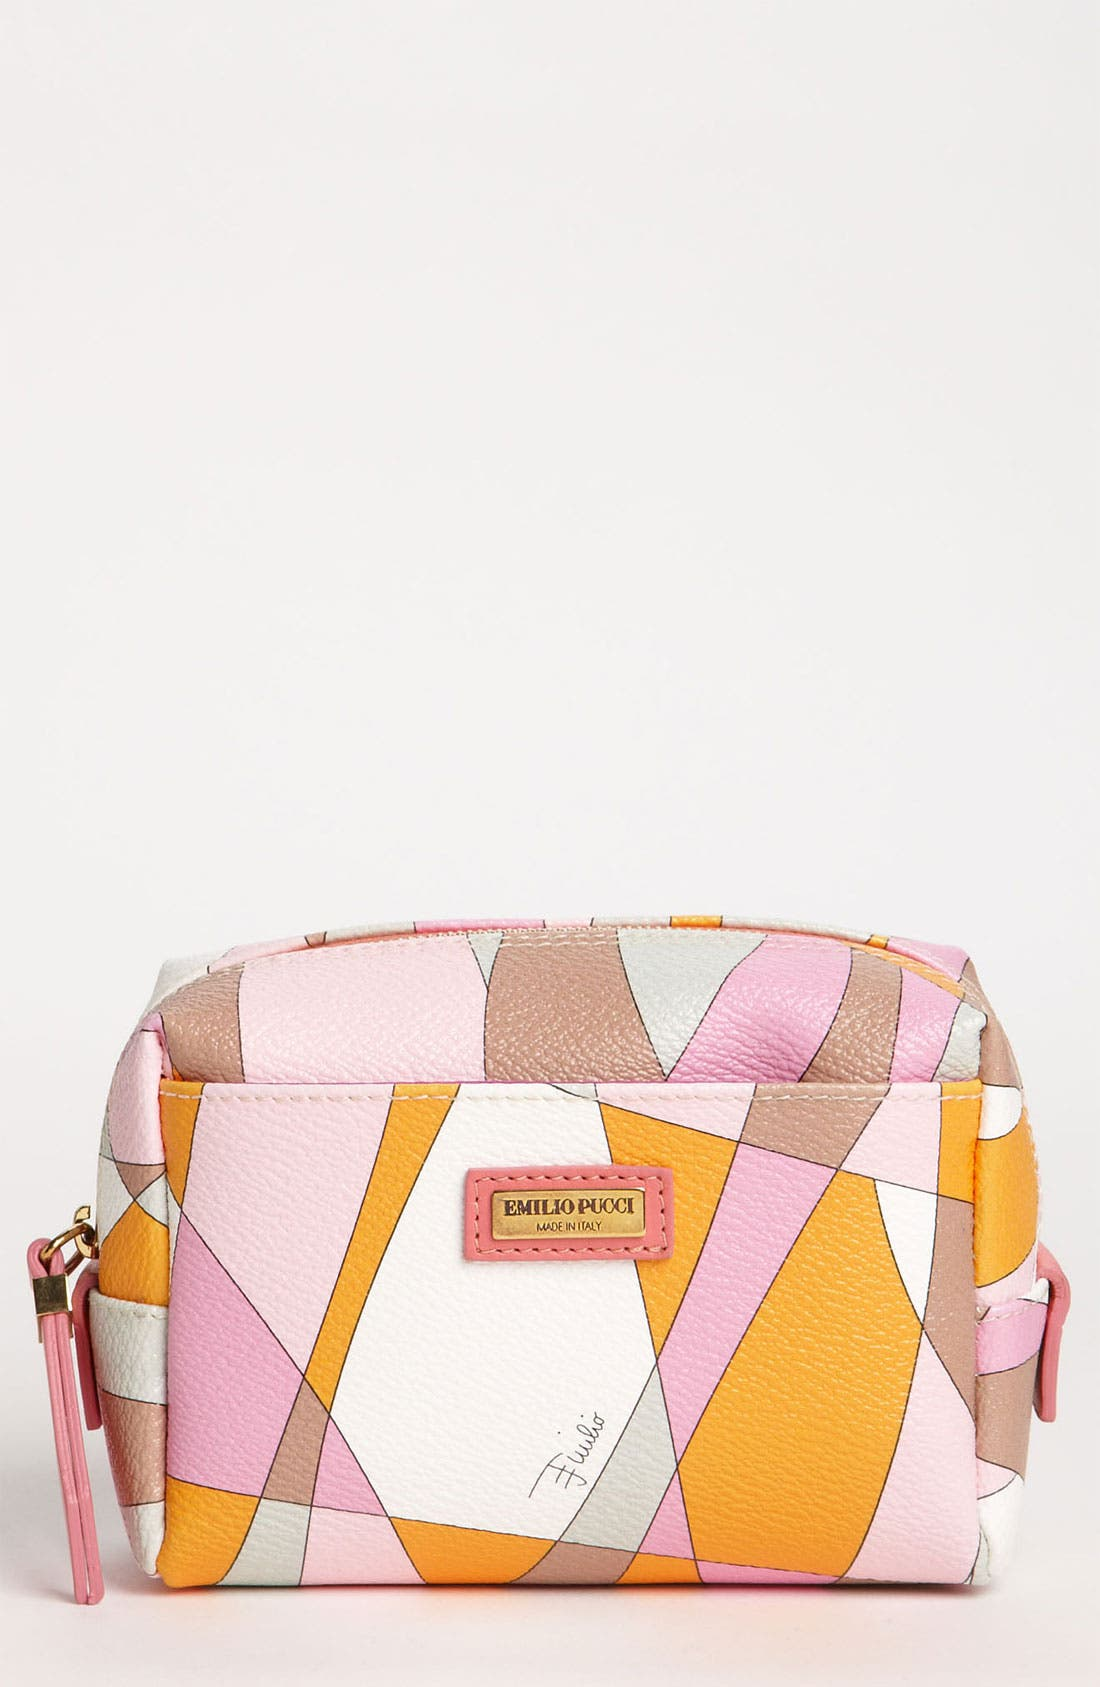 Alternate Image 1 Selected - Emilio Pucci 'Small' Cosmetics Pouch